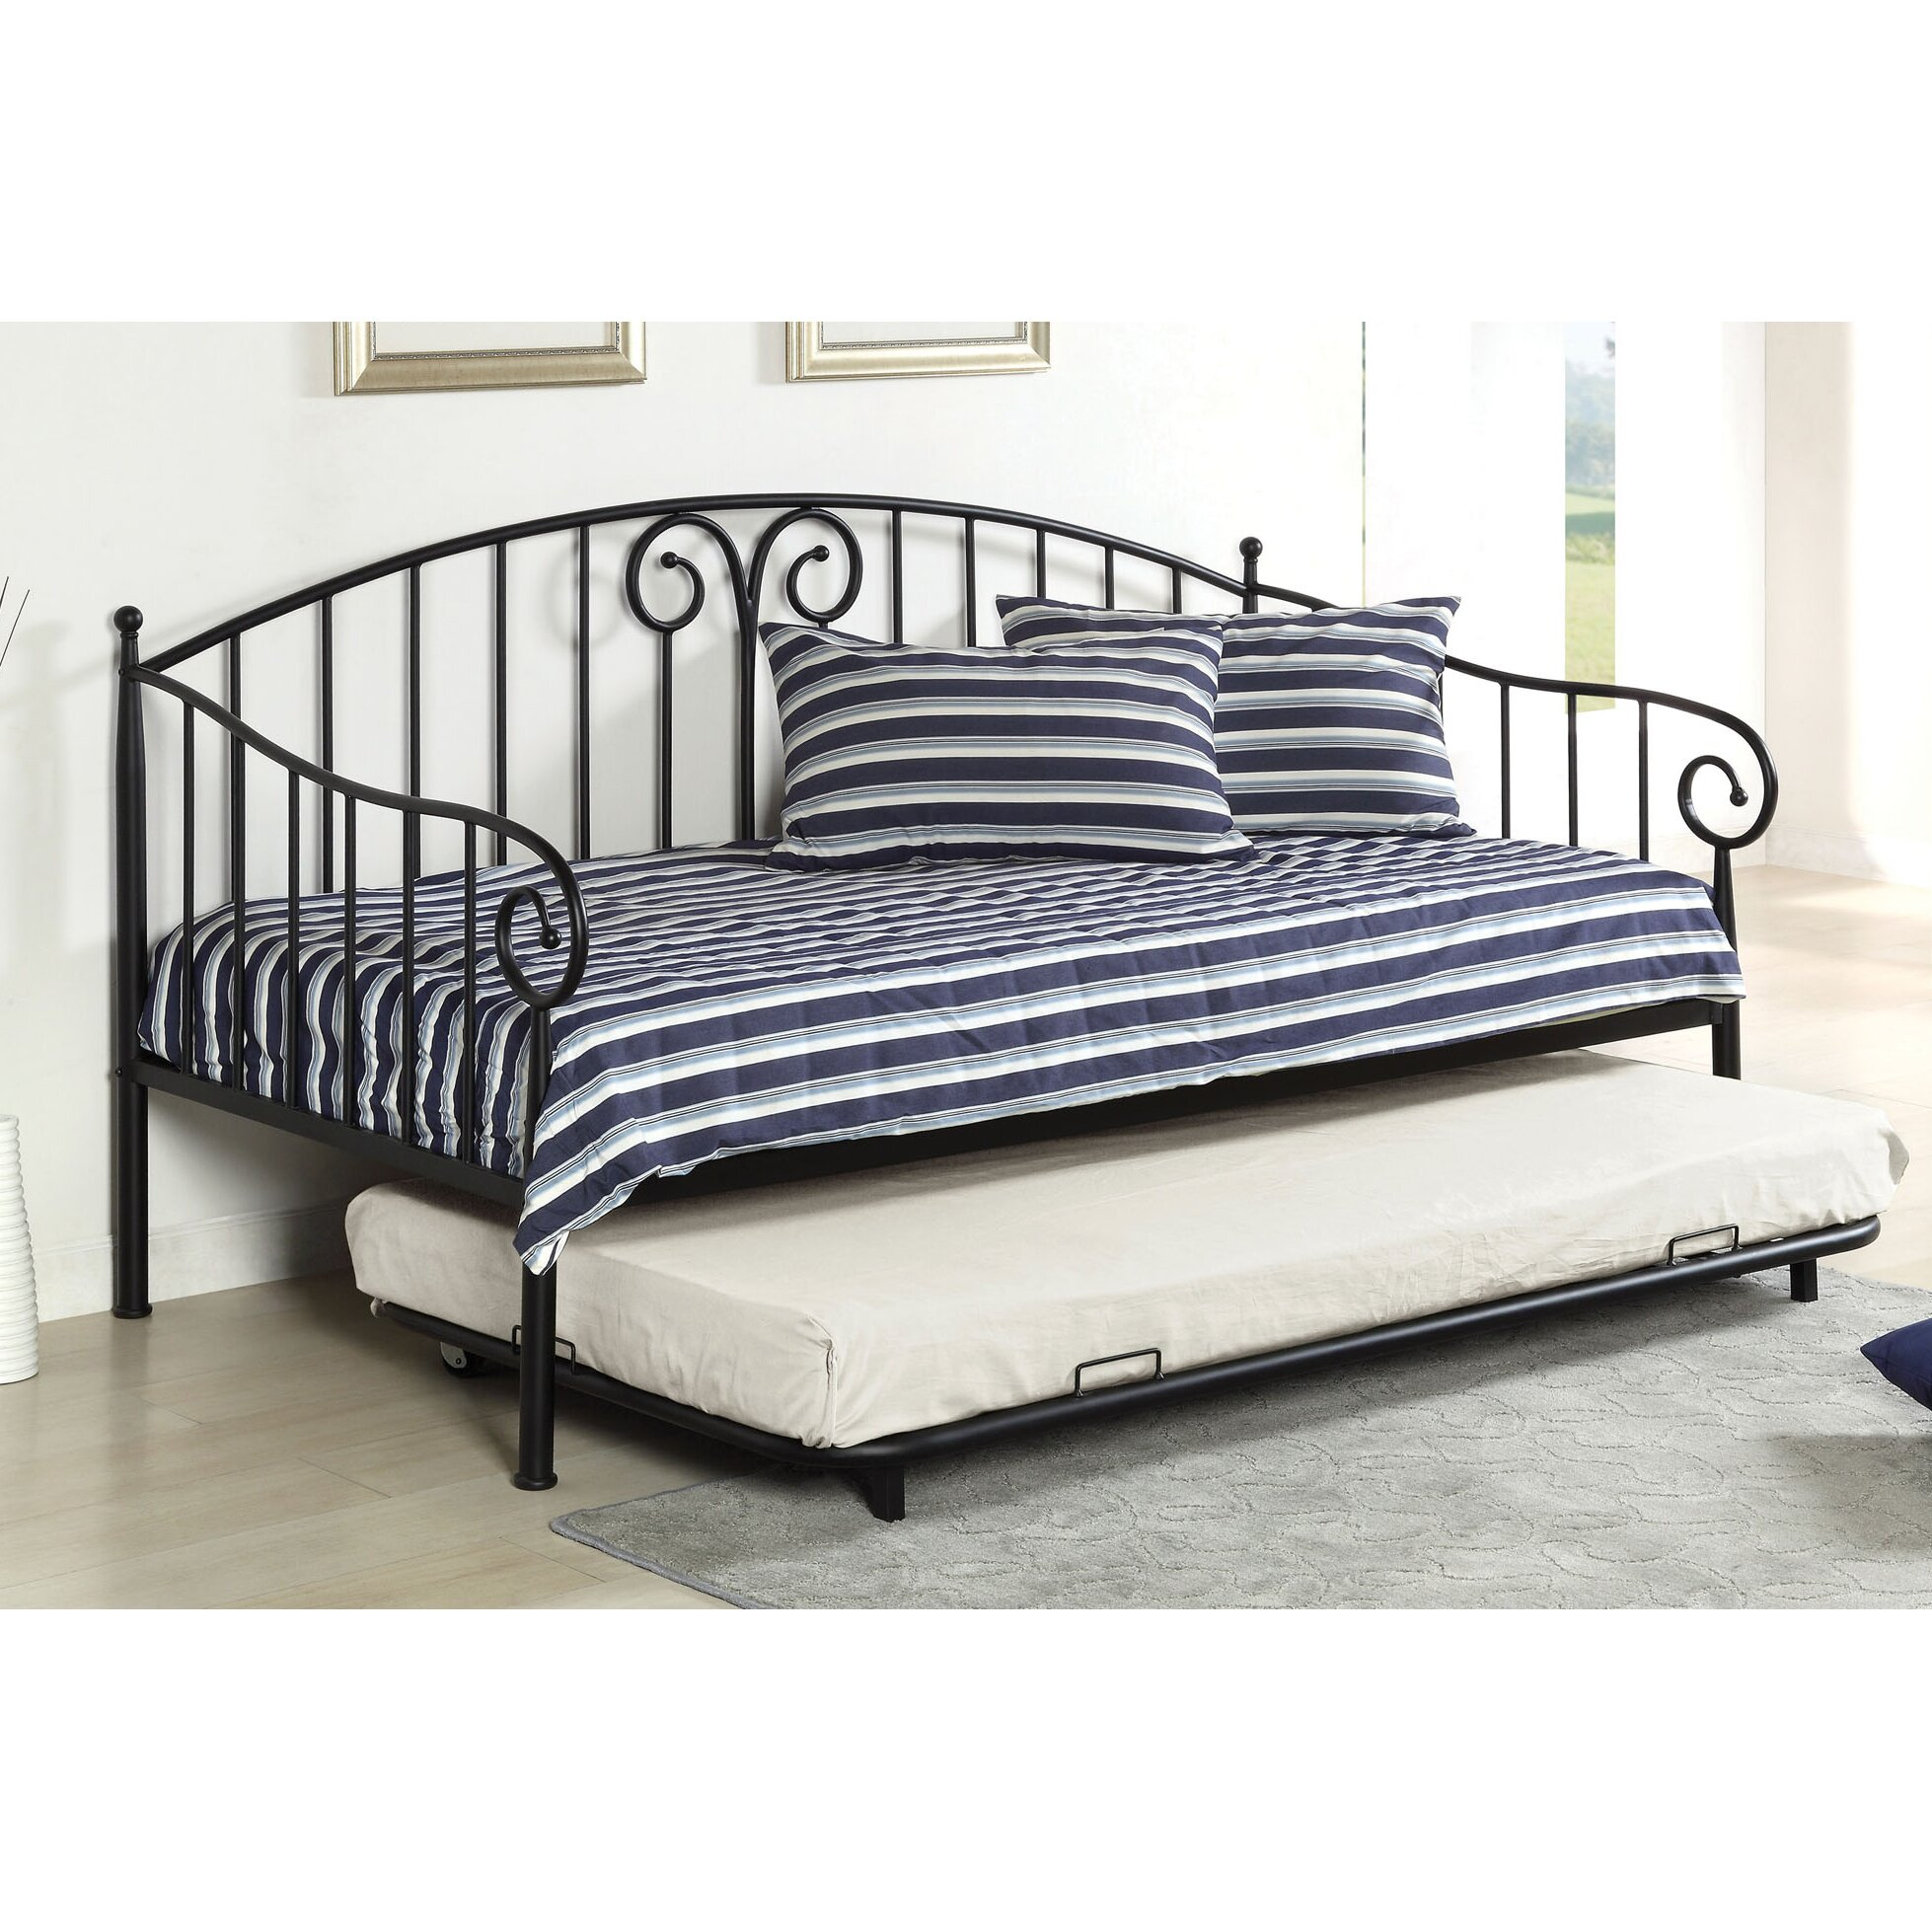 hokku designs pebble daybed with trundle reviews wayfair. Black Bedroom Furniture Sets. Home Design Ideas